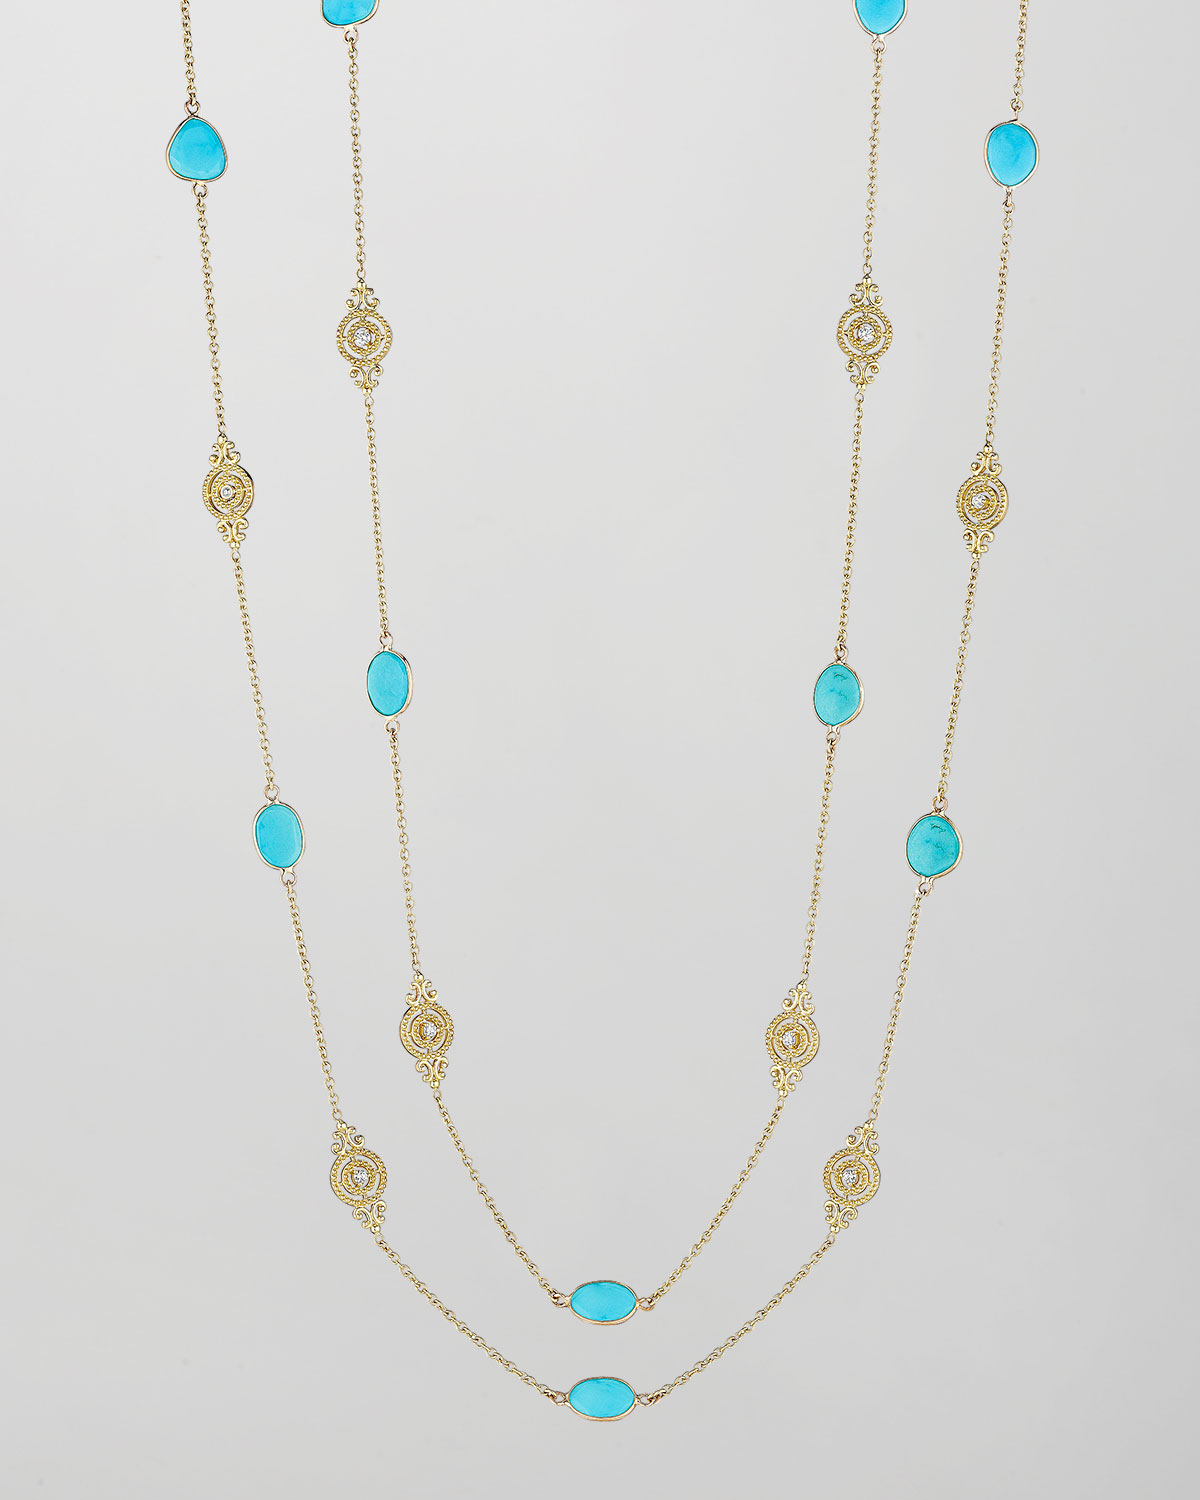 18k Turquoise & Diamond Signature Scroll Chain Necklace, 34""